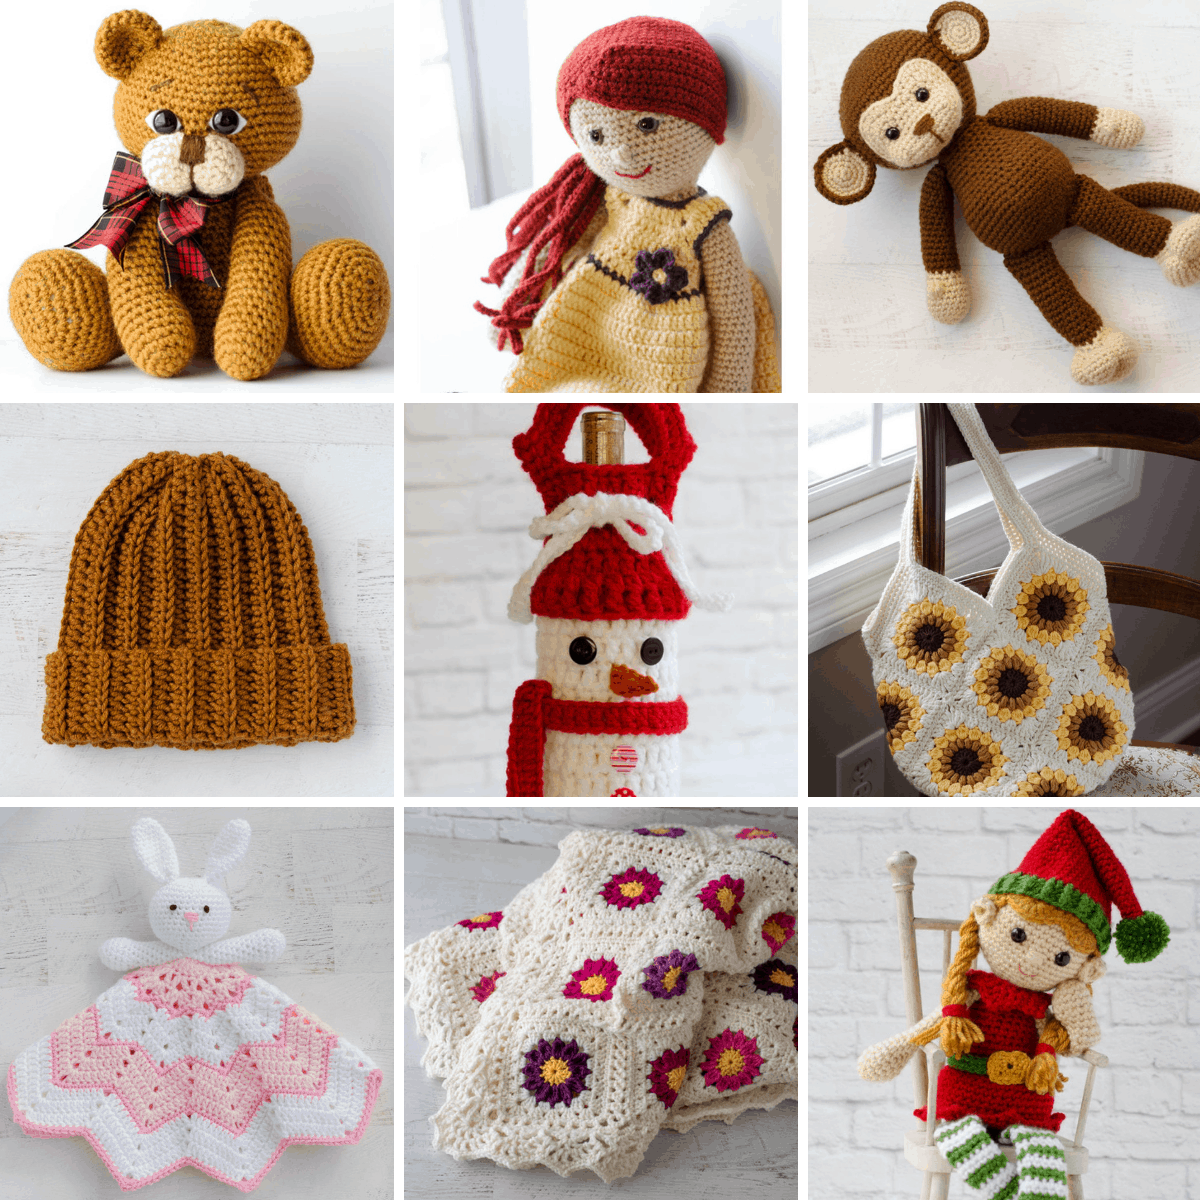 Collage of 9 crochet items: a brown crochet bear, a doll with orange hair, a monkey, a rust color hat, a snowman wine cozy, a daisy purse, a bunny lovey, a flower afghan and an elf.